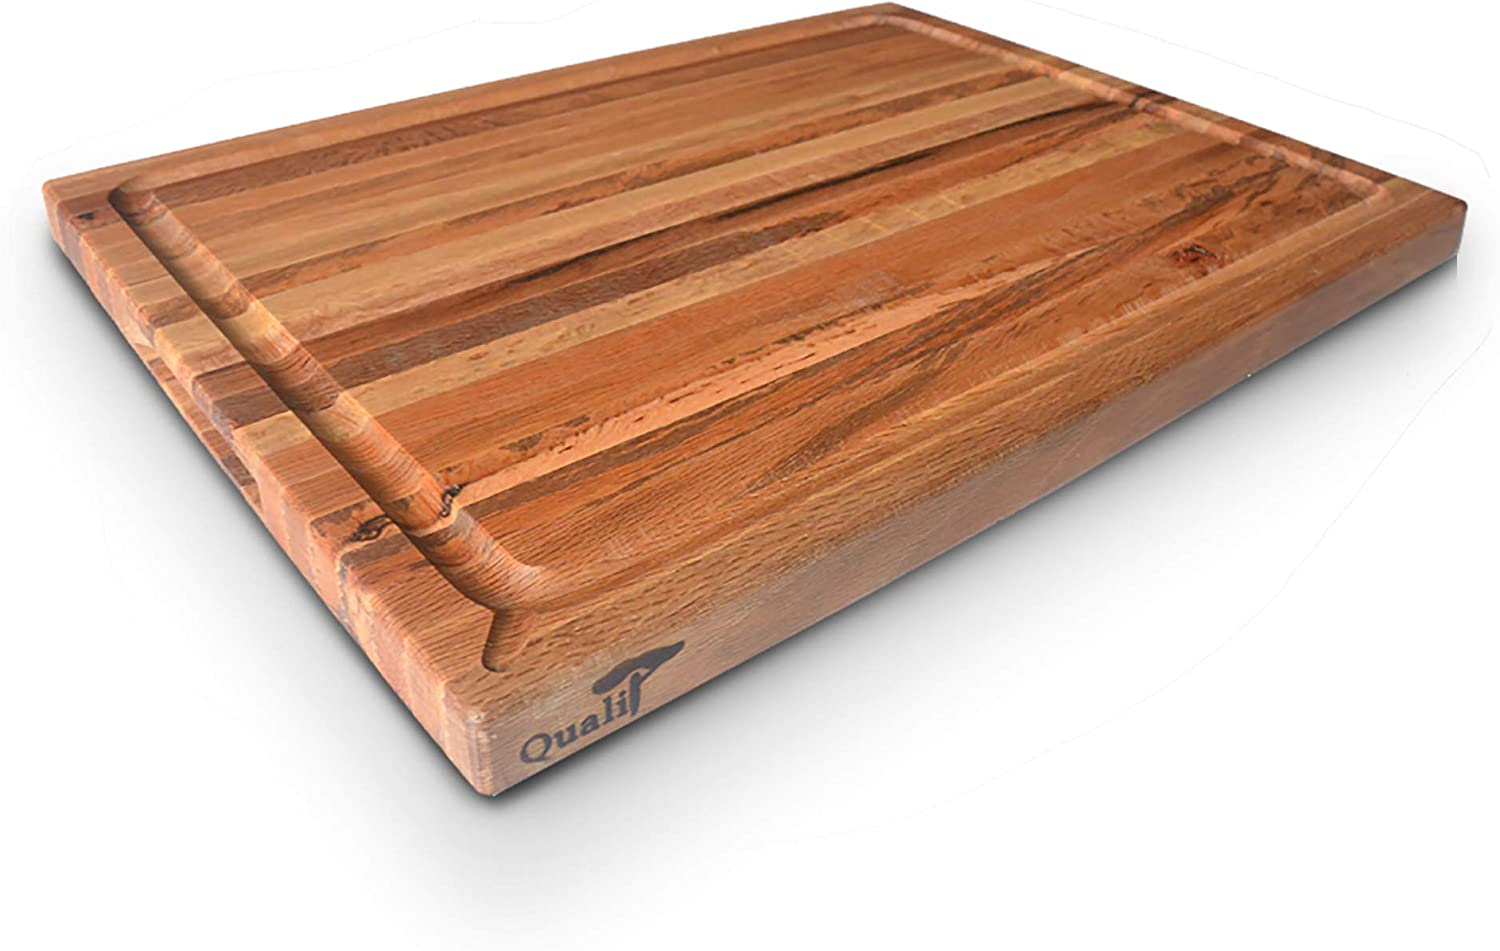 LARGE OAK CUTTING BOARD BY Superior Wood chopping Products board Ranking TOP7 QualiT